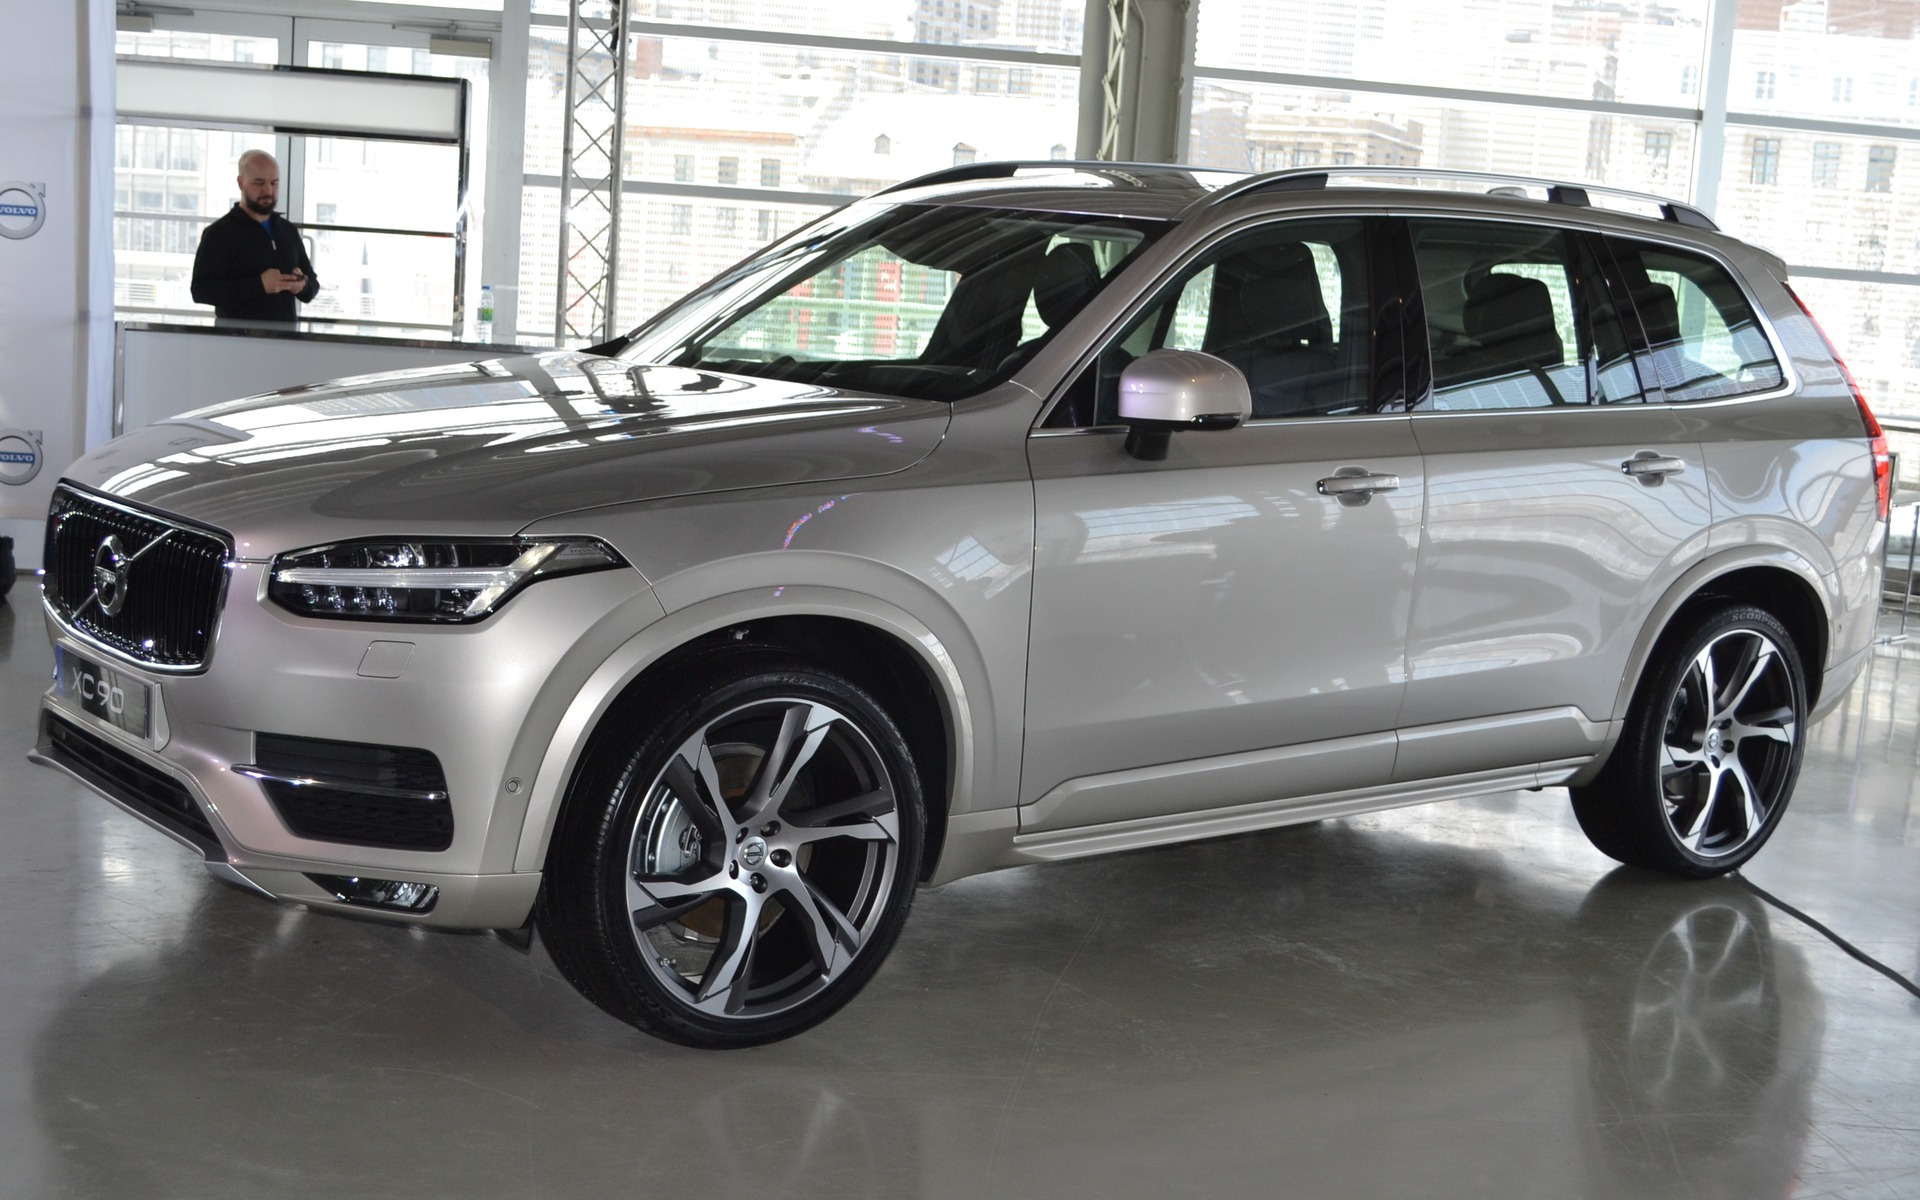 new models volvo introduces the new 2016 xc90 and v60 cross country 2015 volvo xc90 2015. Black Bedroom Furniture Sets. Home Design Ideas